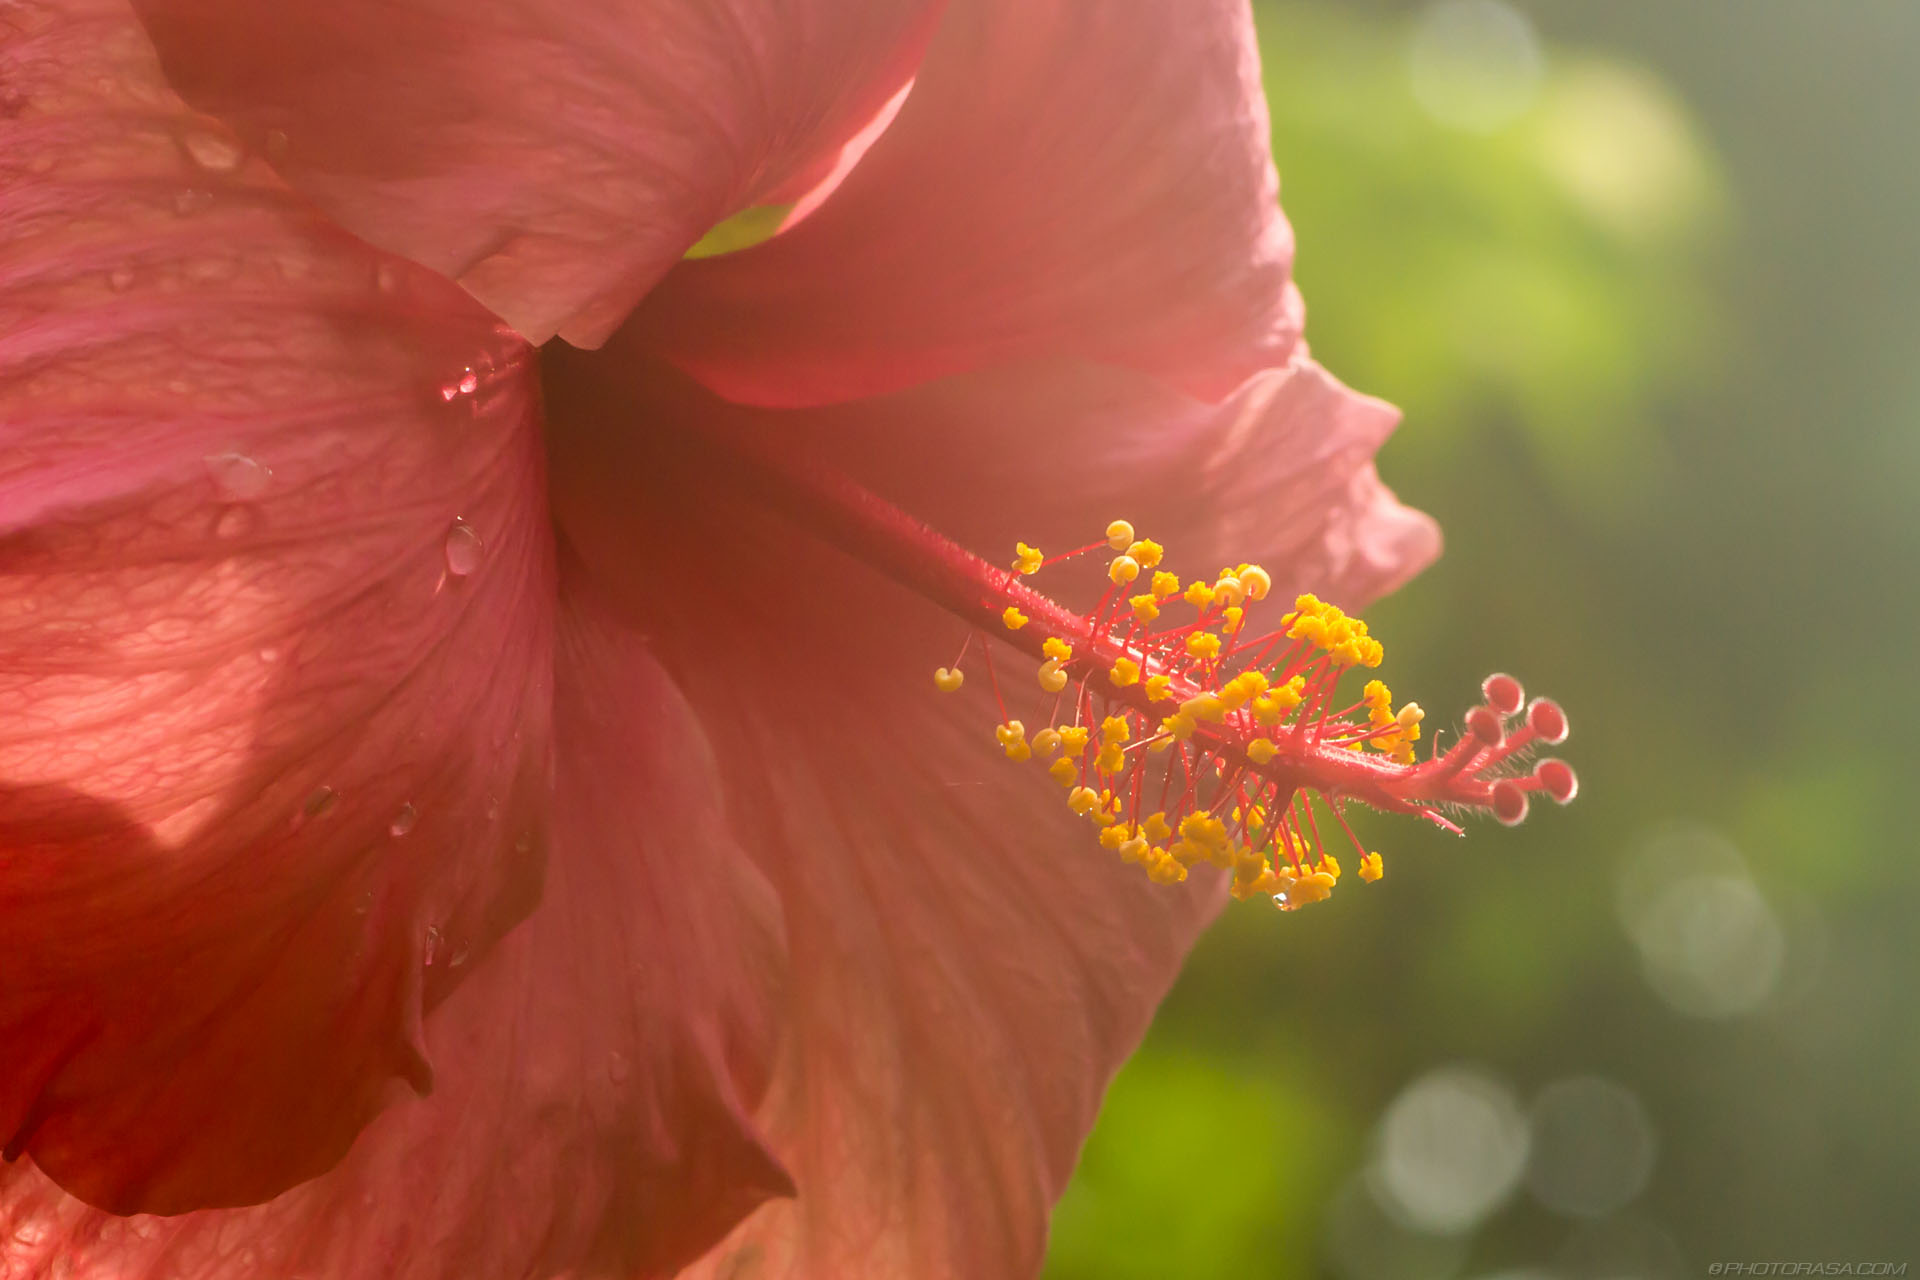 https://photorasa.com/strange-exotic-flowers/pink-flower-with-yellow-stamin-in-steamy-conditions/